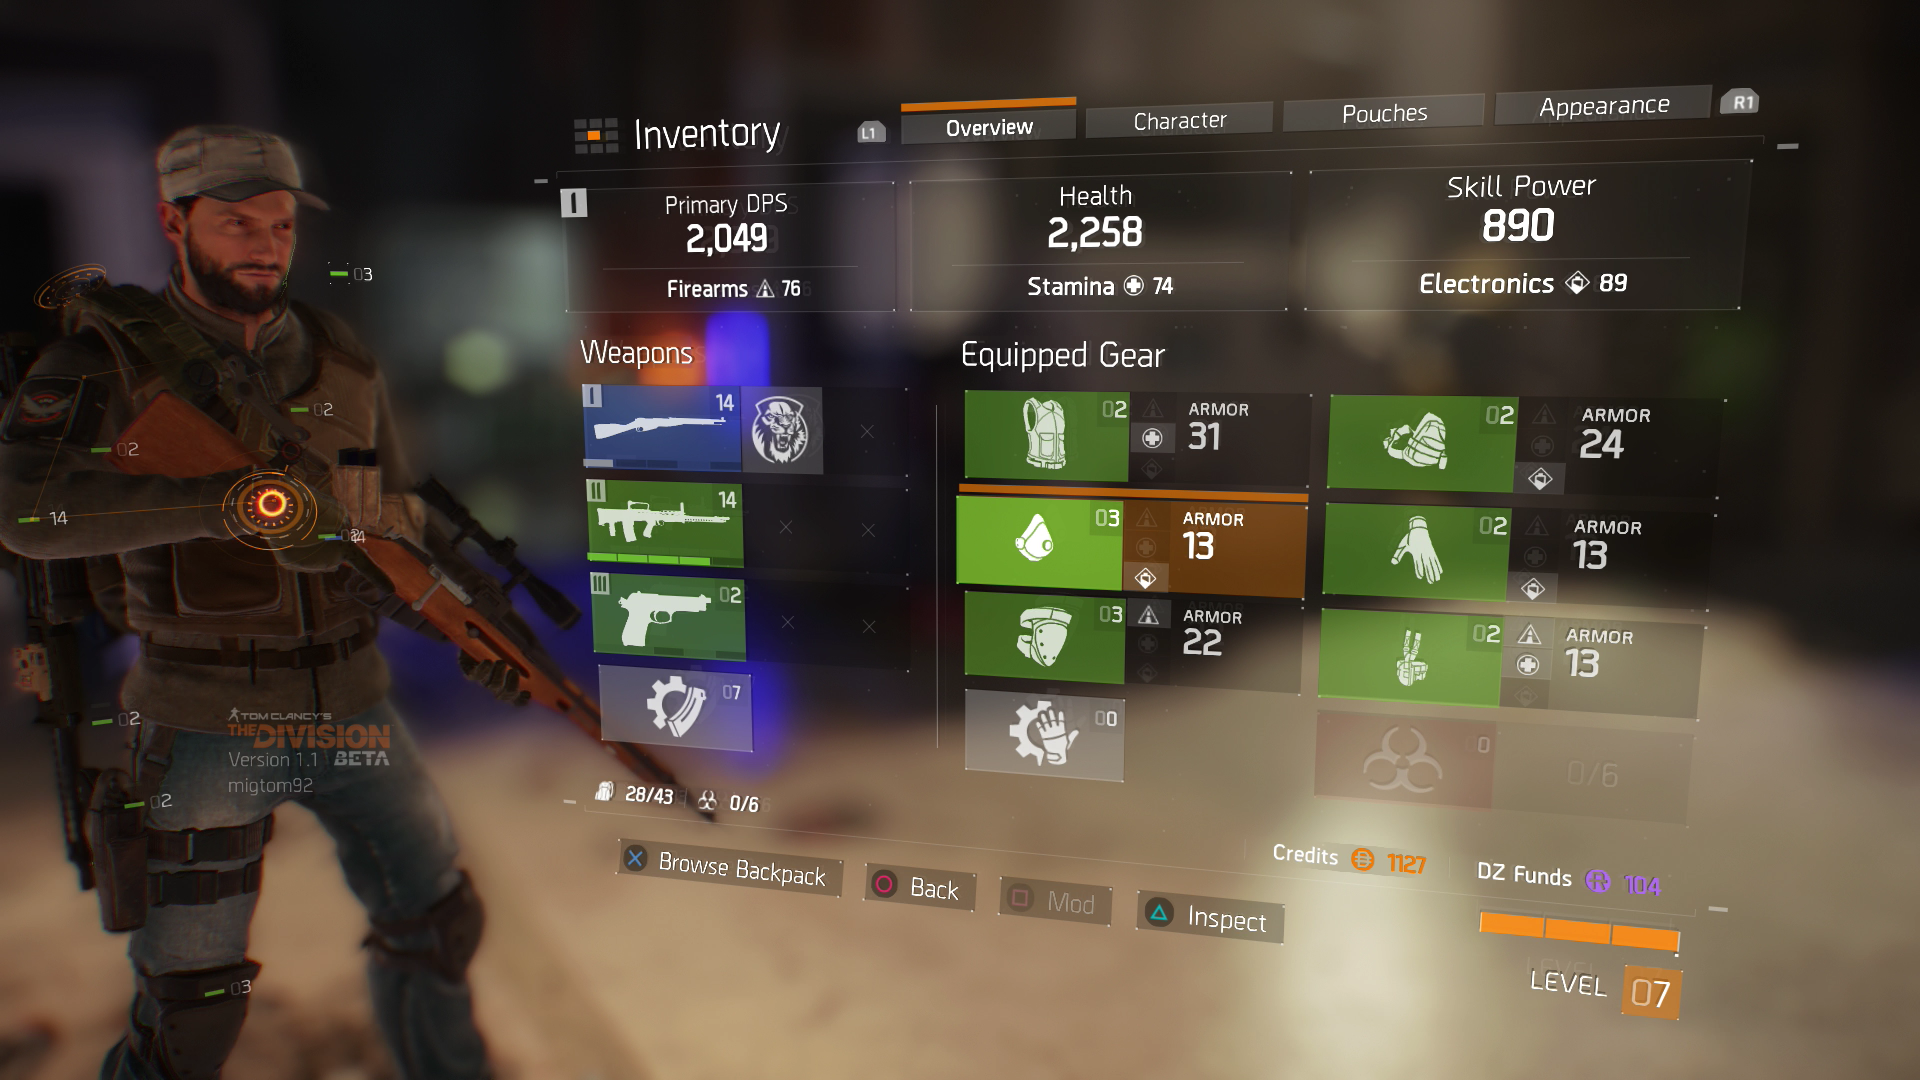 The Division Screen Shot 2016-02-23 05-27-33